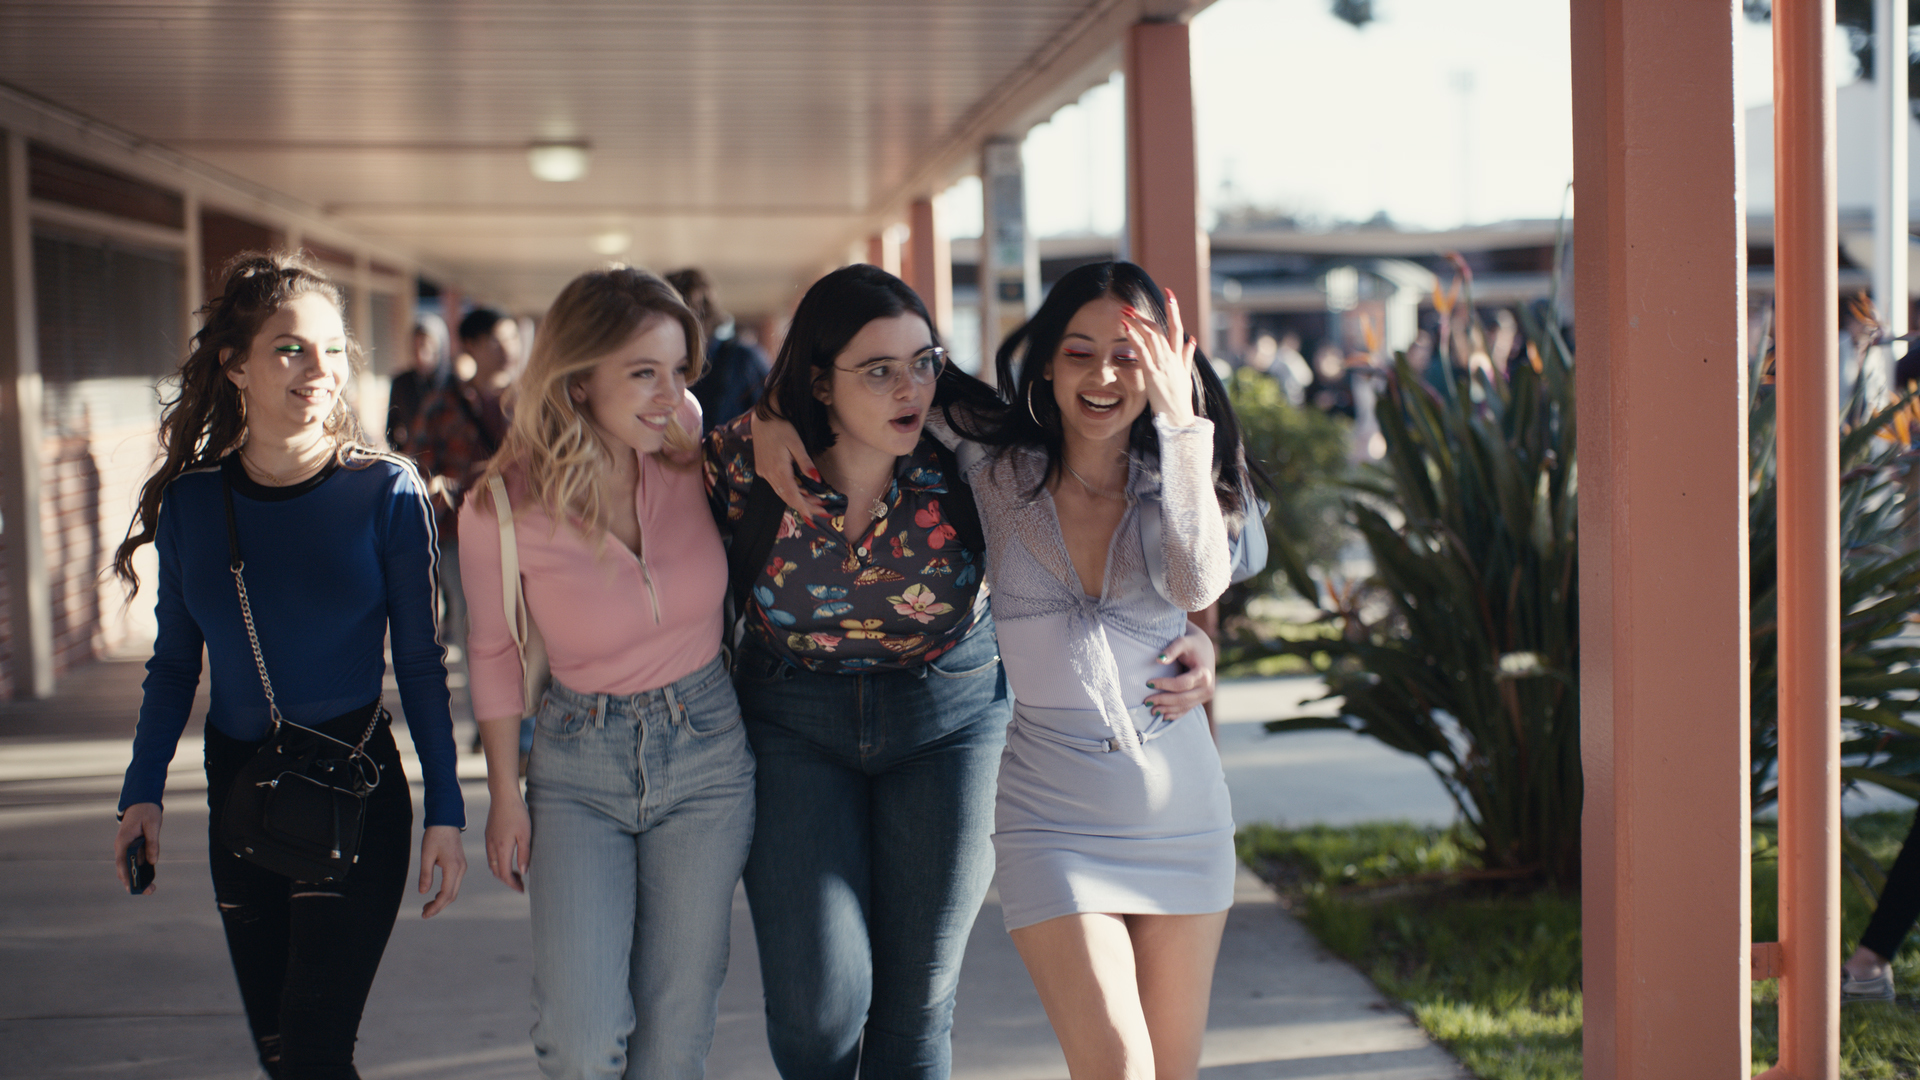 hbo\u0027s \u0027euphoria\u0027 captures the gen z experience through